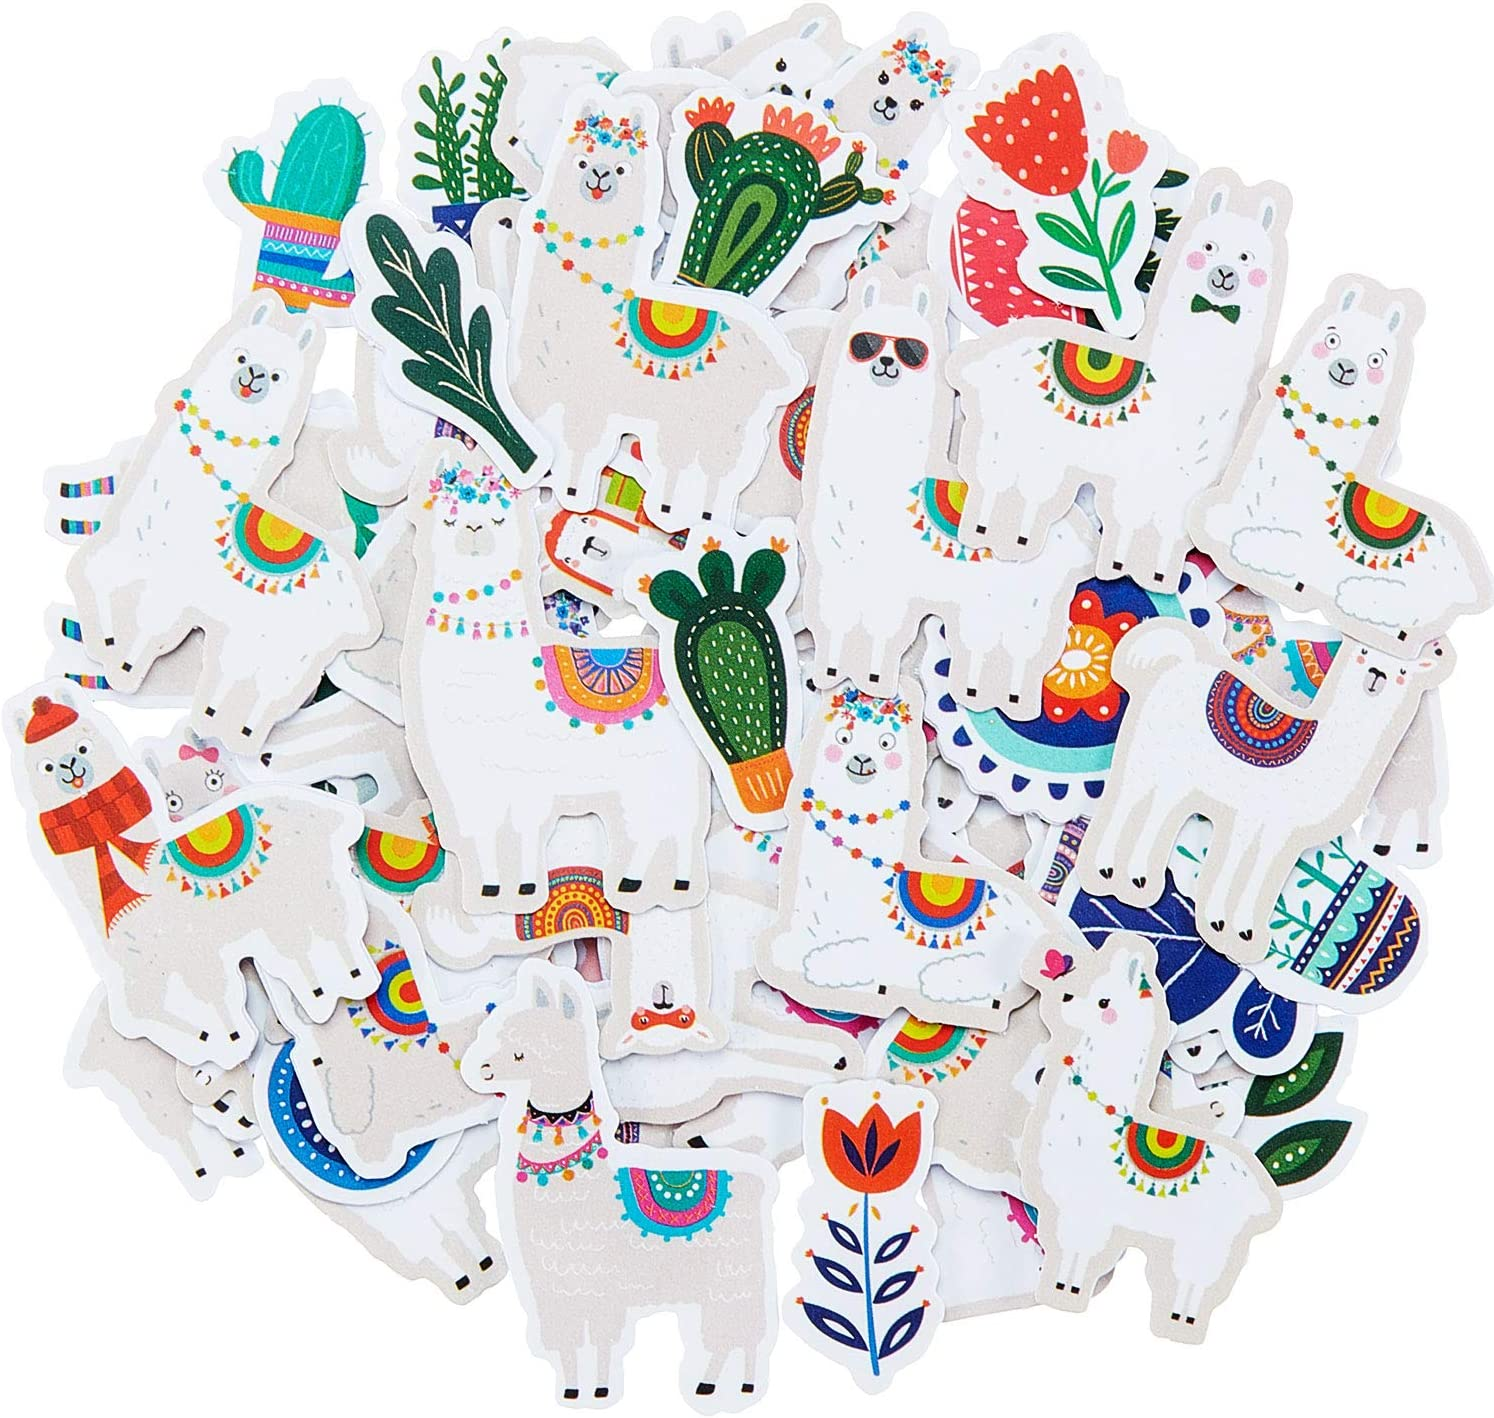 60 Sheets Cute Llama Stickers Waterproof Llama Animal Party Stickers Colorful Cactus Llama Stickers for Scrapbook Journal Bottle Laptop